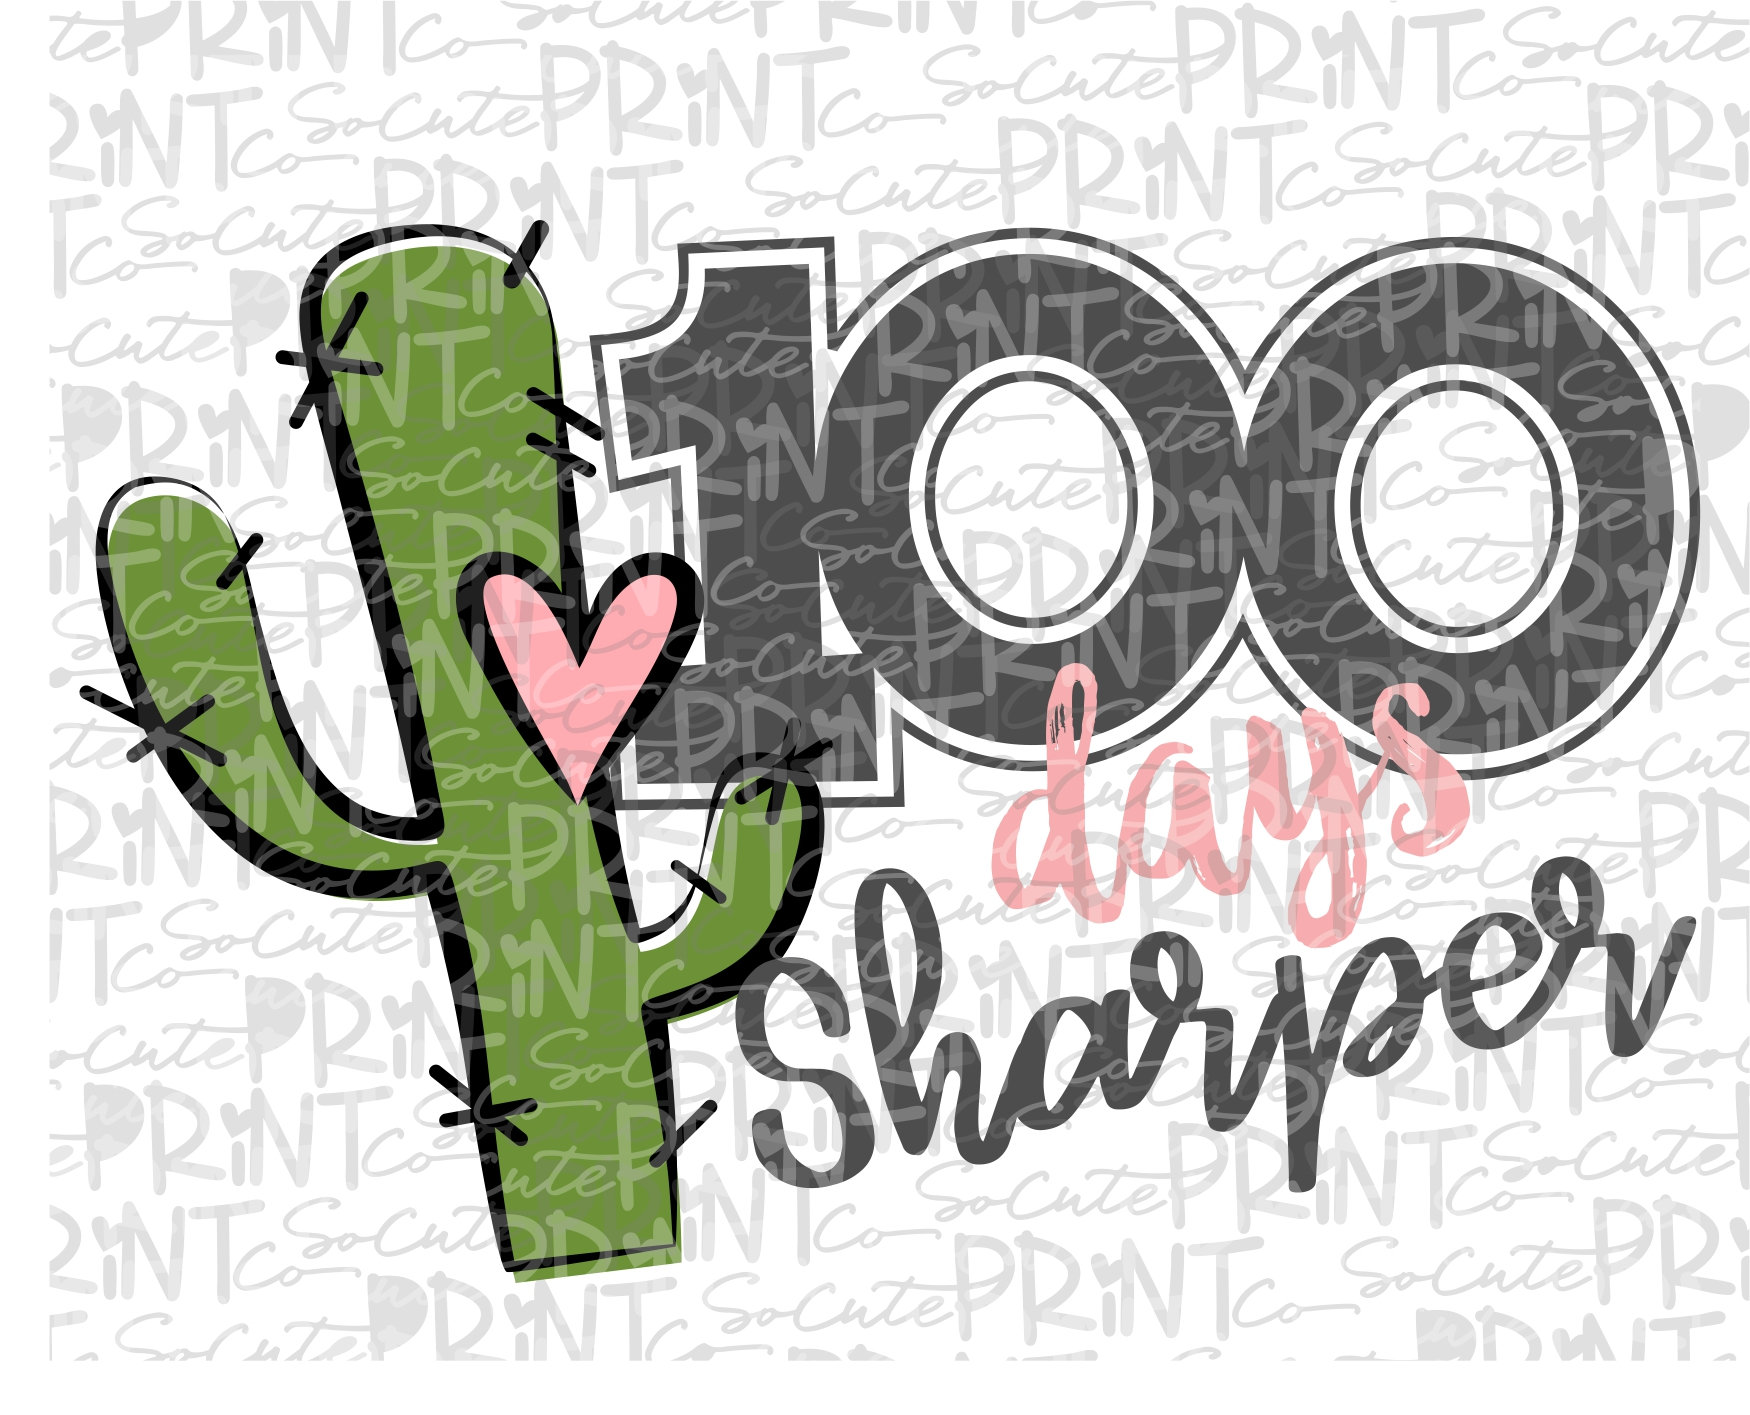 School clipart, 100 days sharper, Cactus PNG file for sublimation, one  hundred days of school, 100th day of school, rustic cactus clipart.